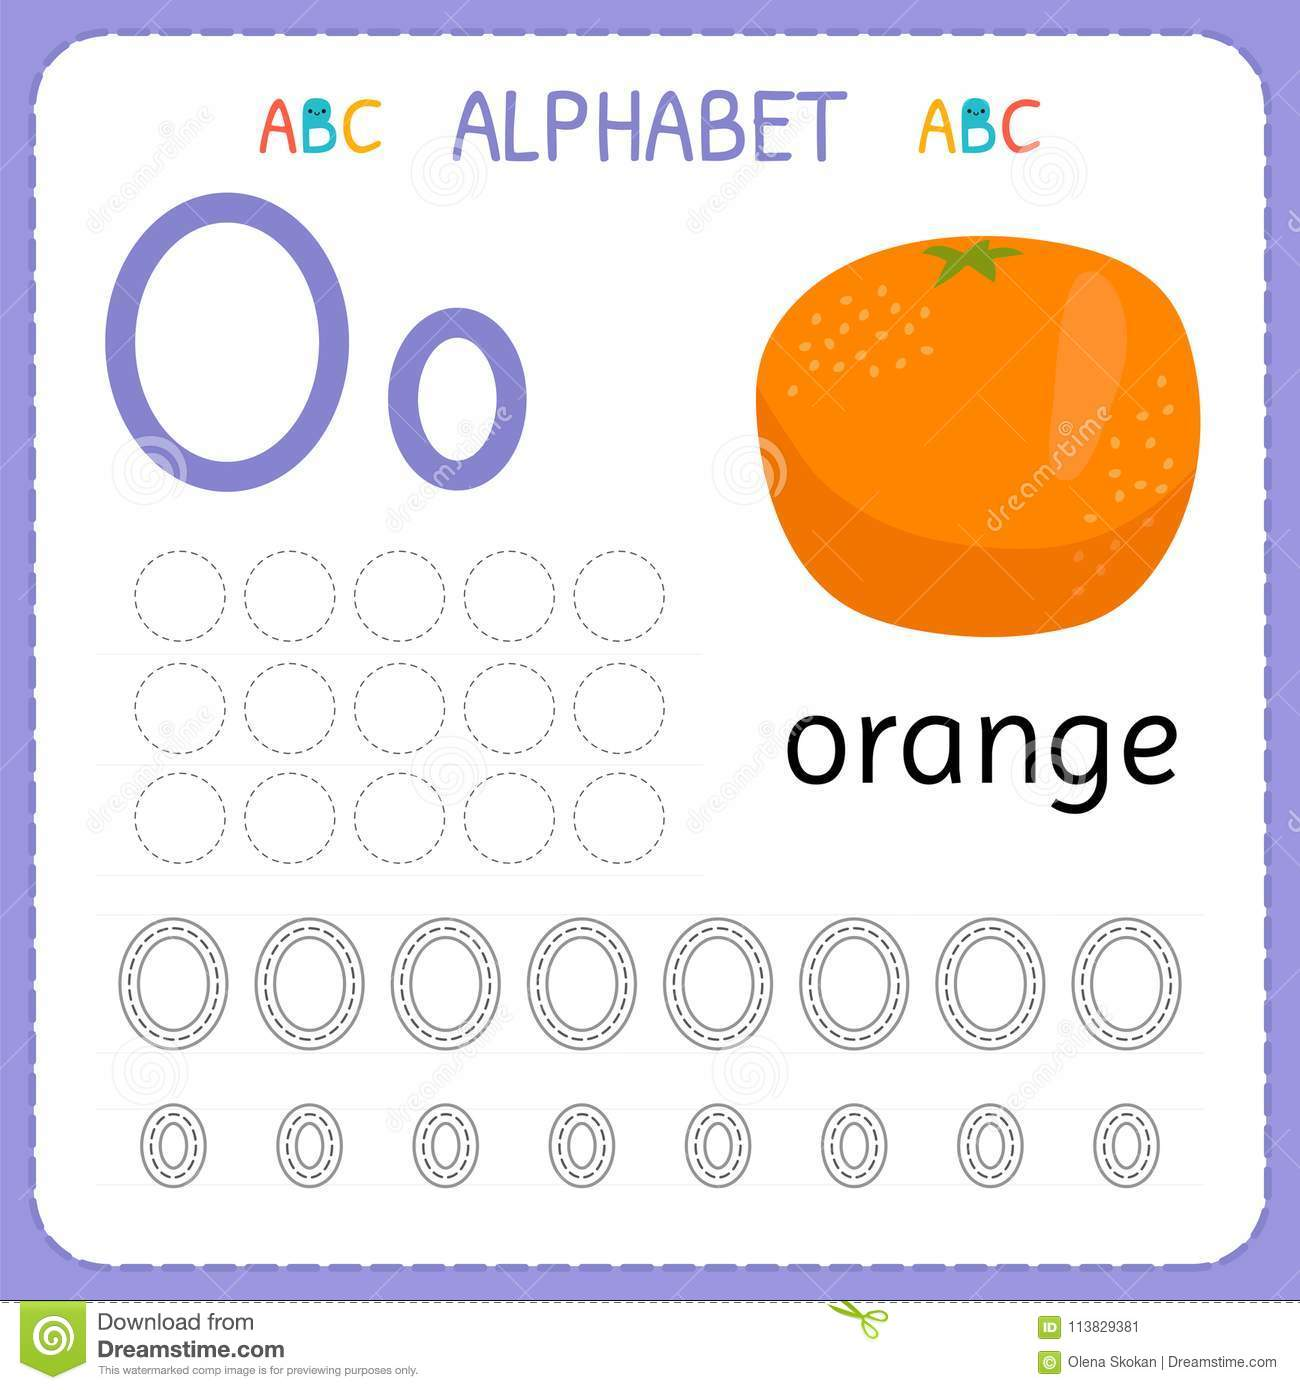 Alphabet Tracing Worksheet For Preschool And Kindergarten Writing Practice Letter O Exercises